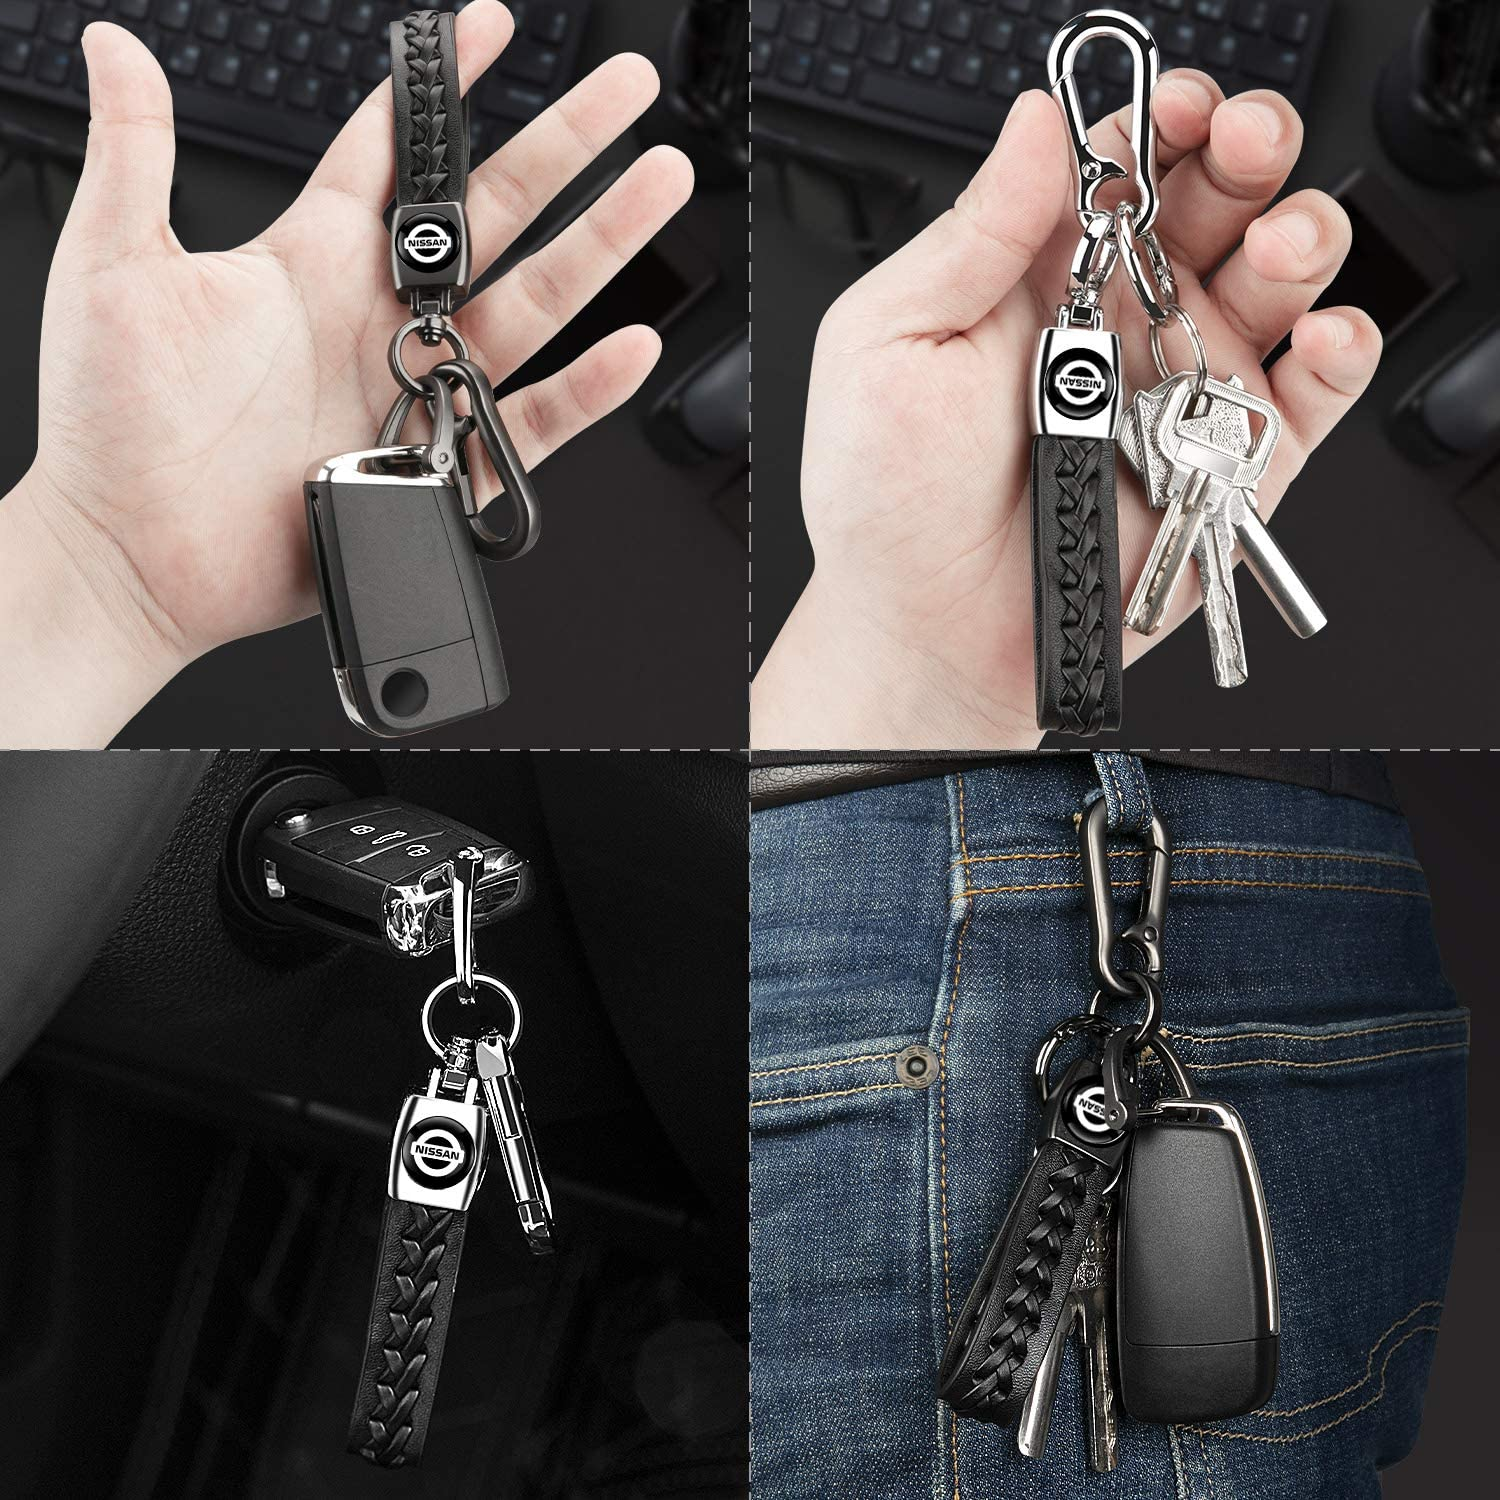 YimSting Genuine Leather Keychain for GMC Valet Car Key Chain Detachable Keyring Car Logo Accessories for Man Woman 2Pack